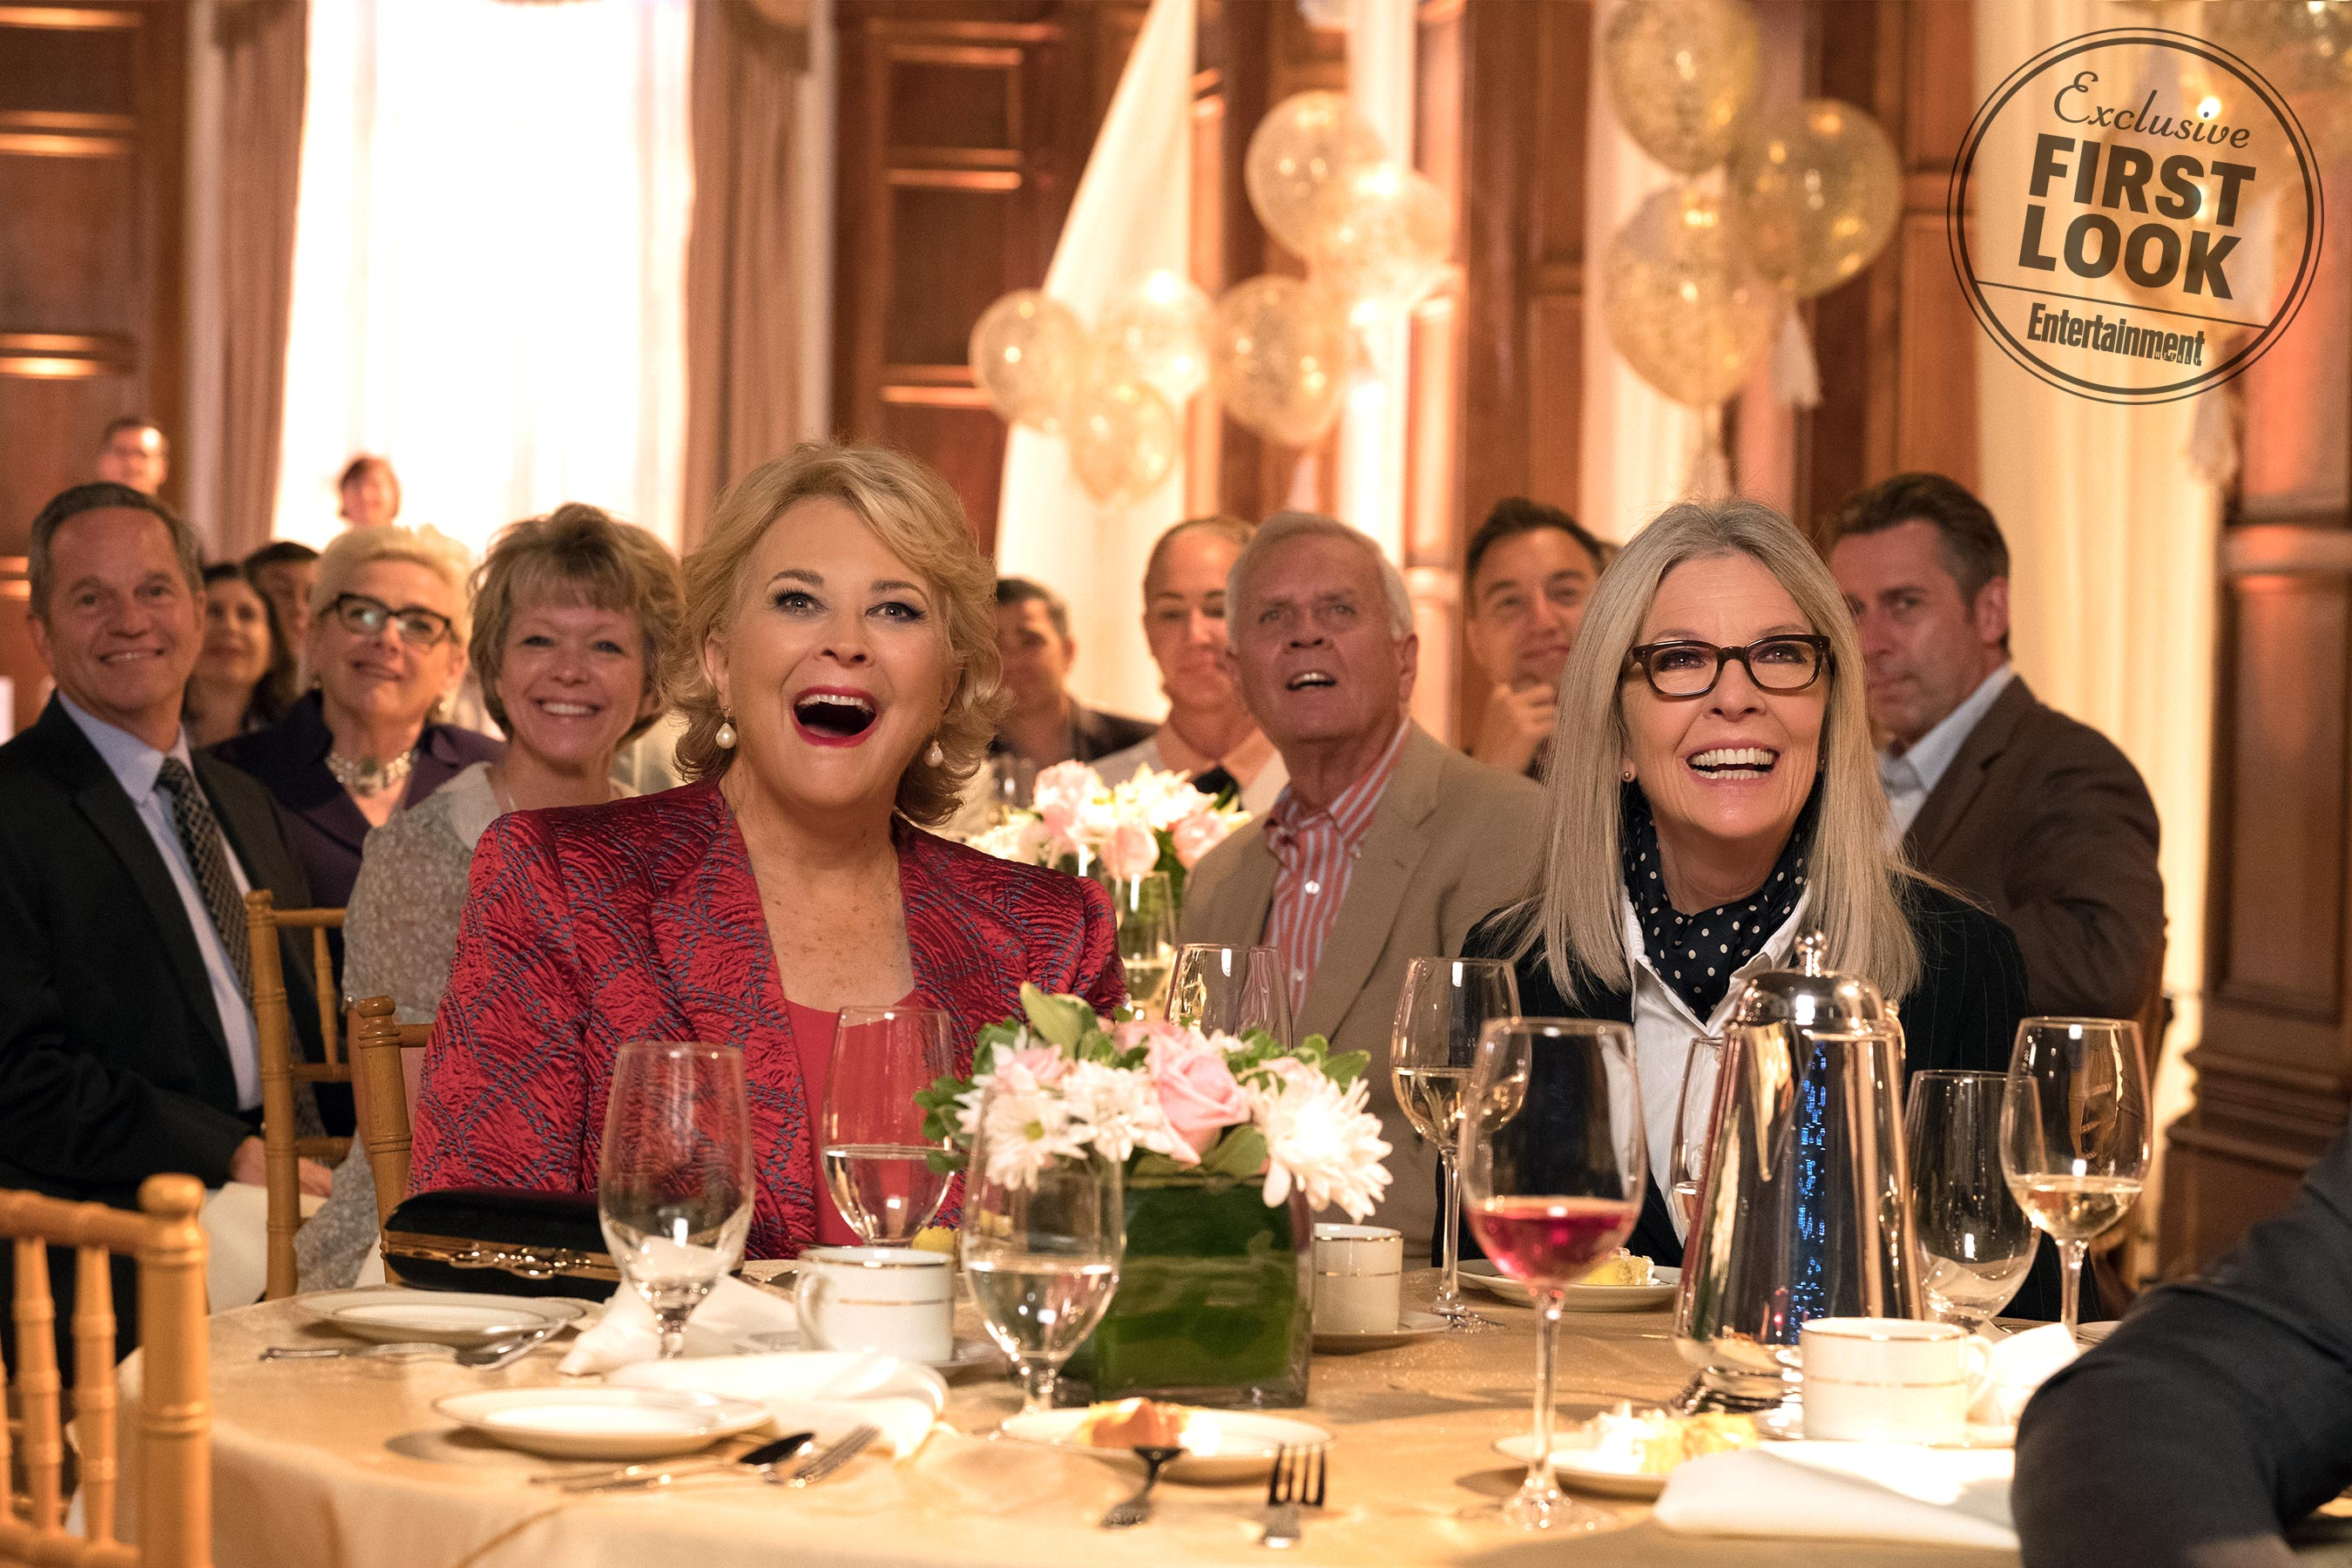 Book Club first look: Candice Bergen previews Fifty Shades-inspired comedy